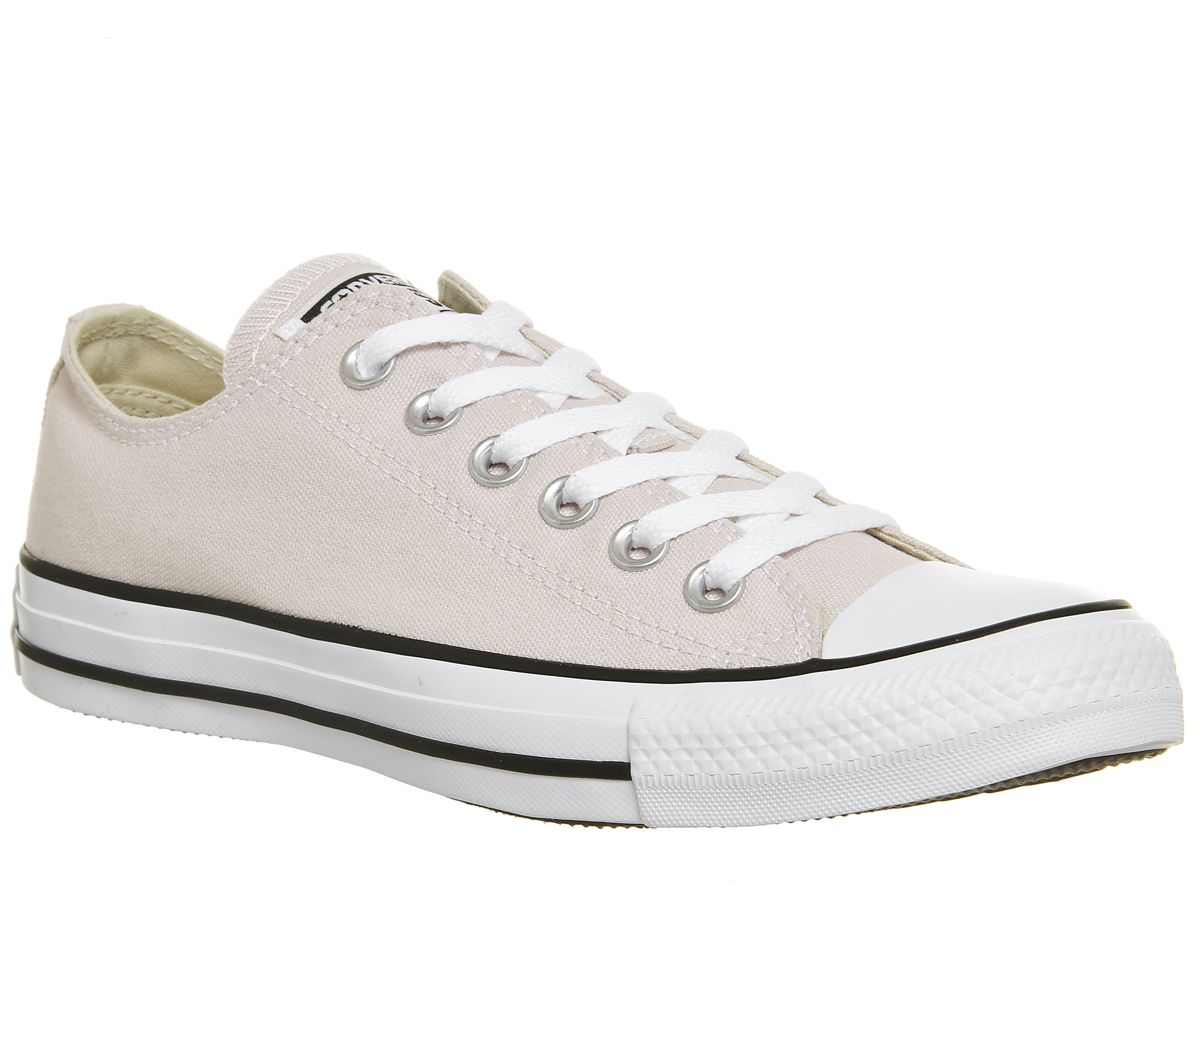 d9e8751a8240 Converse Converse All Star Low Barely Rose - Hers trainers